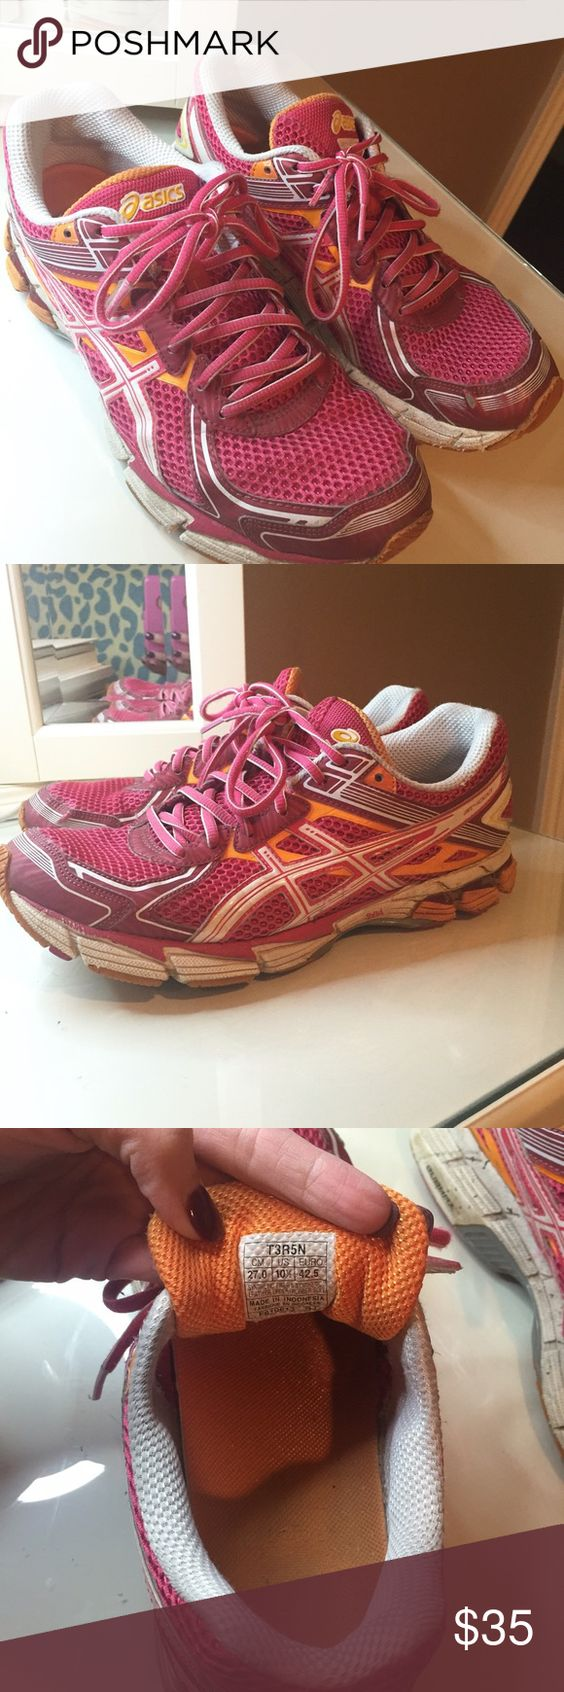 Asics Running Shoe These pink, coral, and orange asics are super comfy! They have been worn and show some wear, but are still a nice fit! Size 10.5. Asics Shoes Sneakers